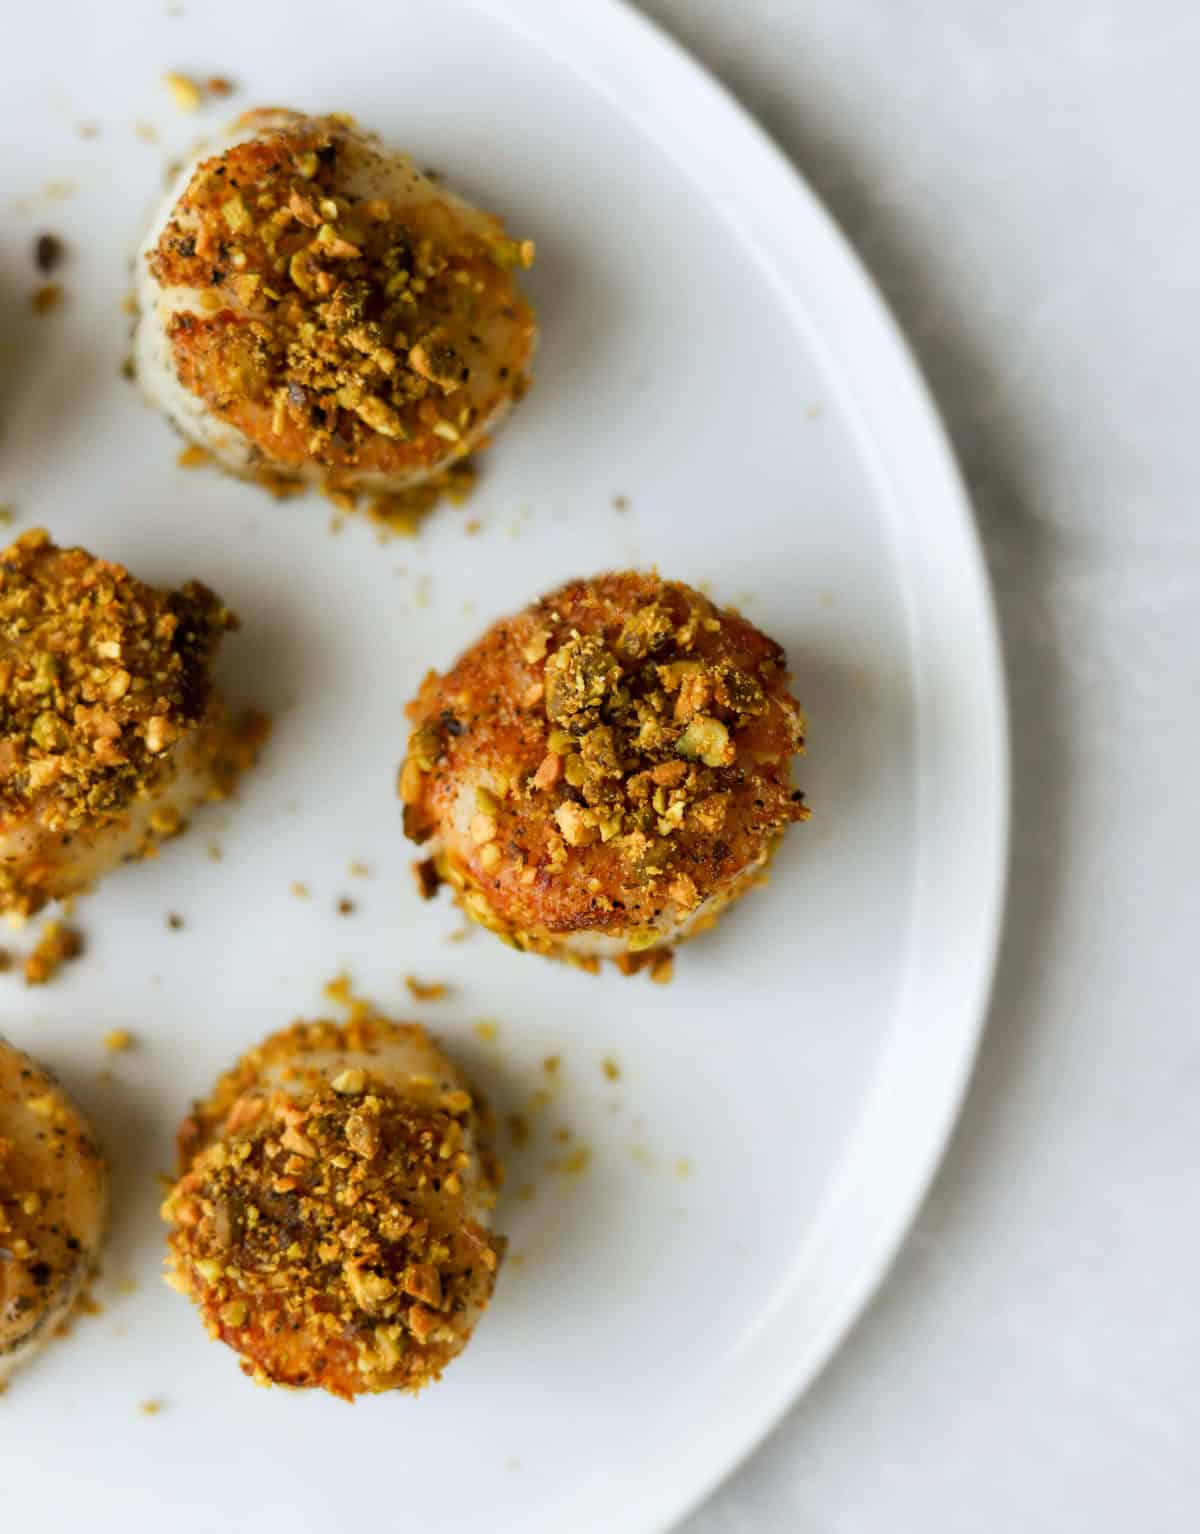 An overhead shot of a plate of pistachio crusted scallops.